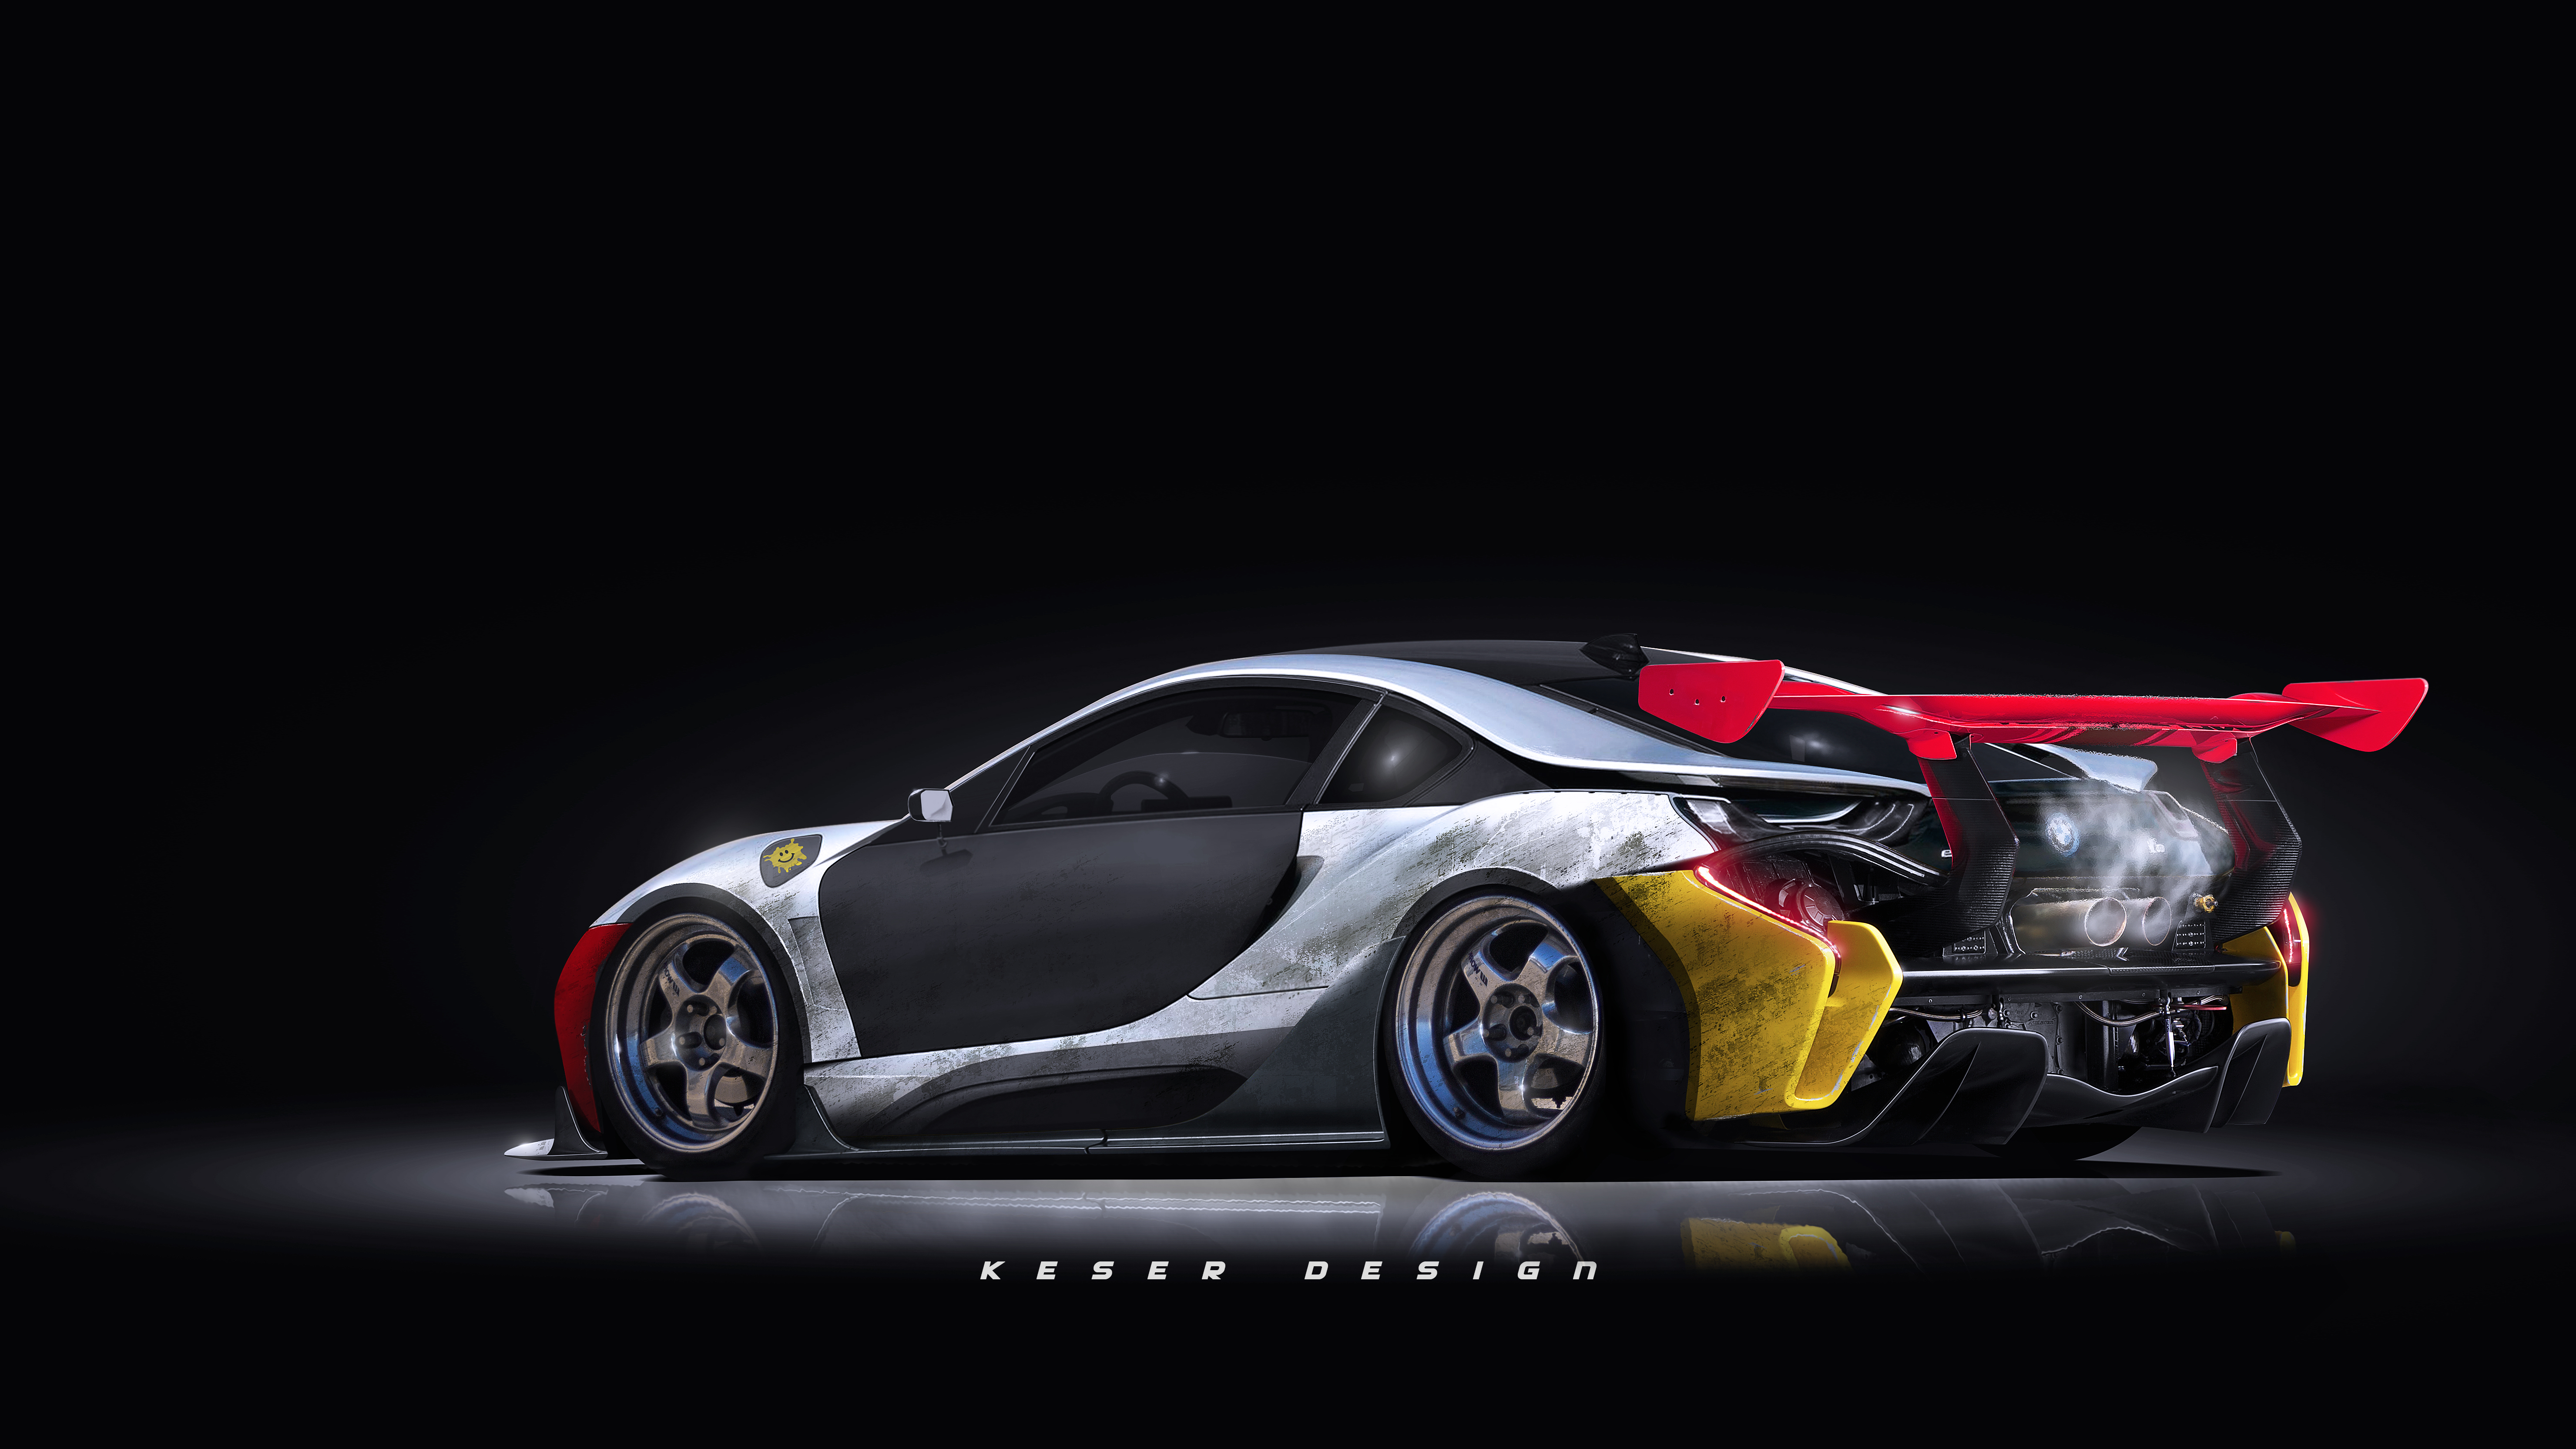 Bmw I8 Digital Art Tuned Hd Cars 4k Wallpapers Images